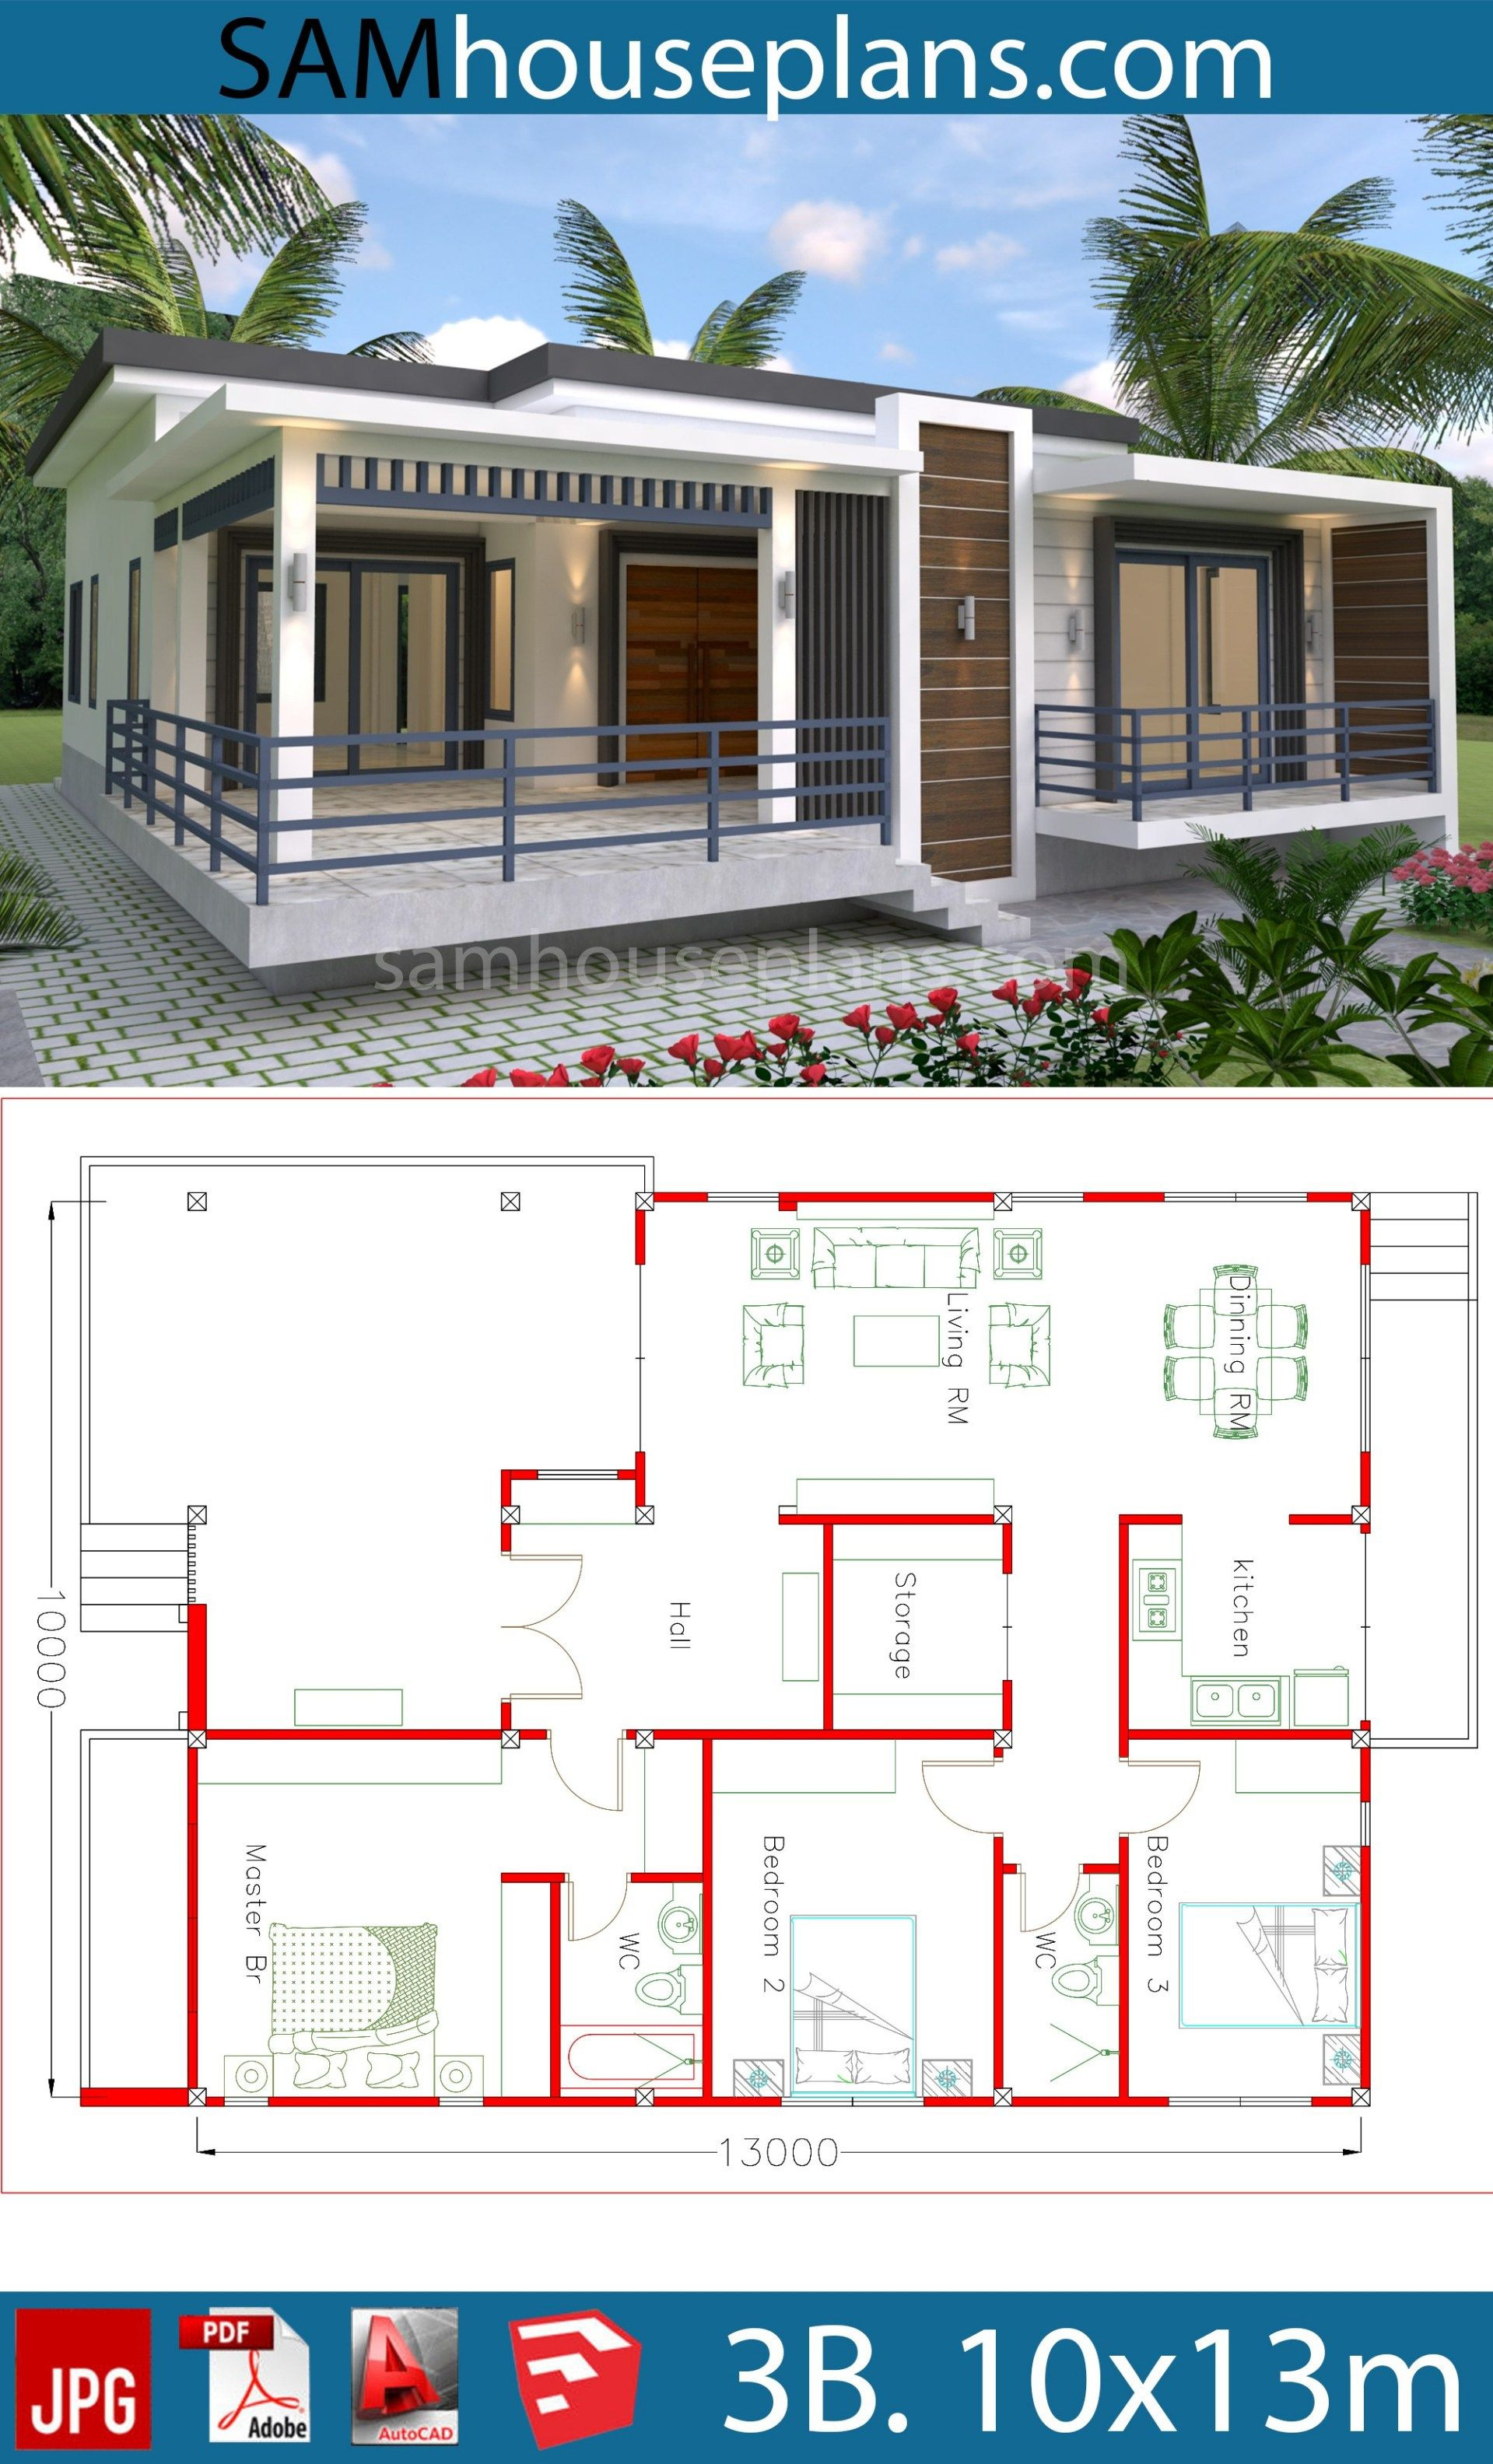 Beautiful House Plans with Photos Elegant House Plans 10x13m with 3 Bedrooms